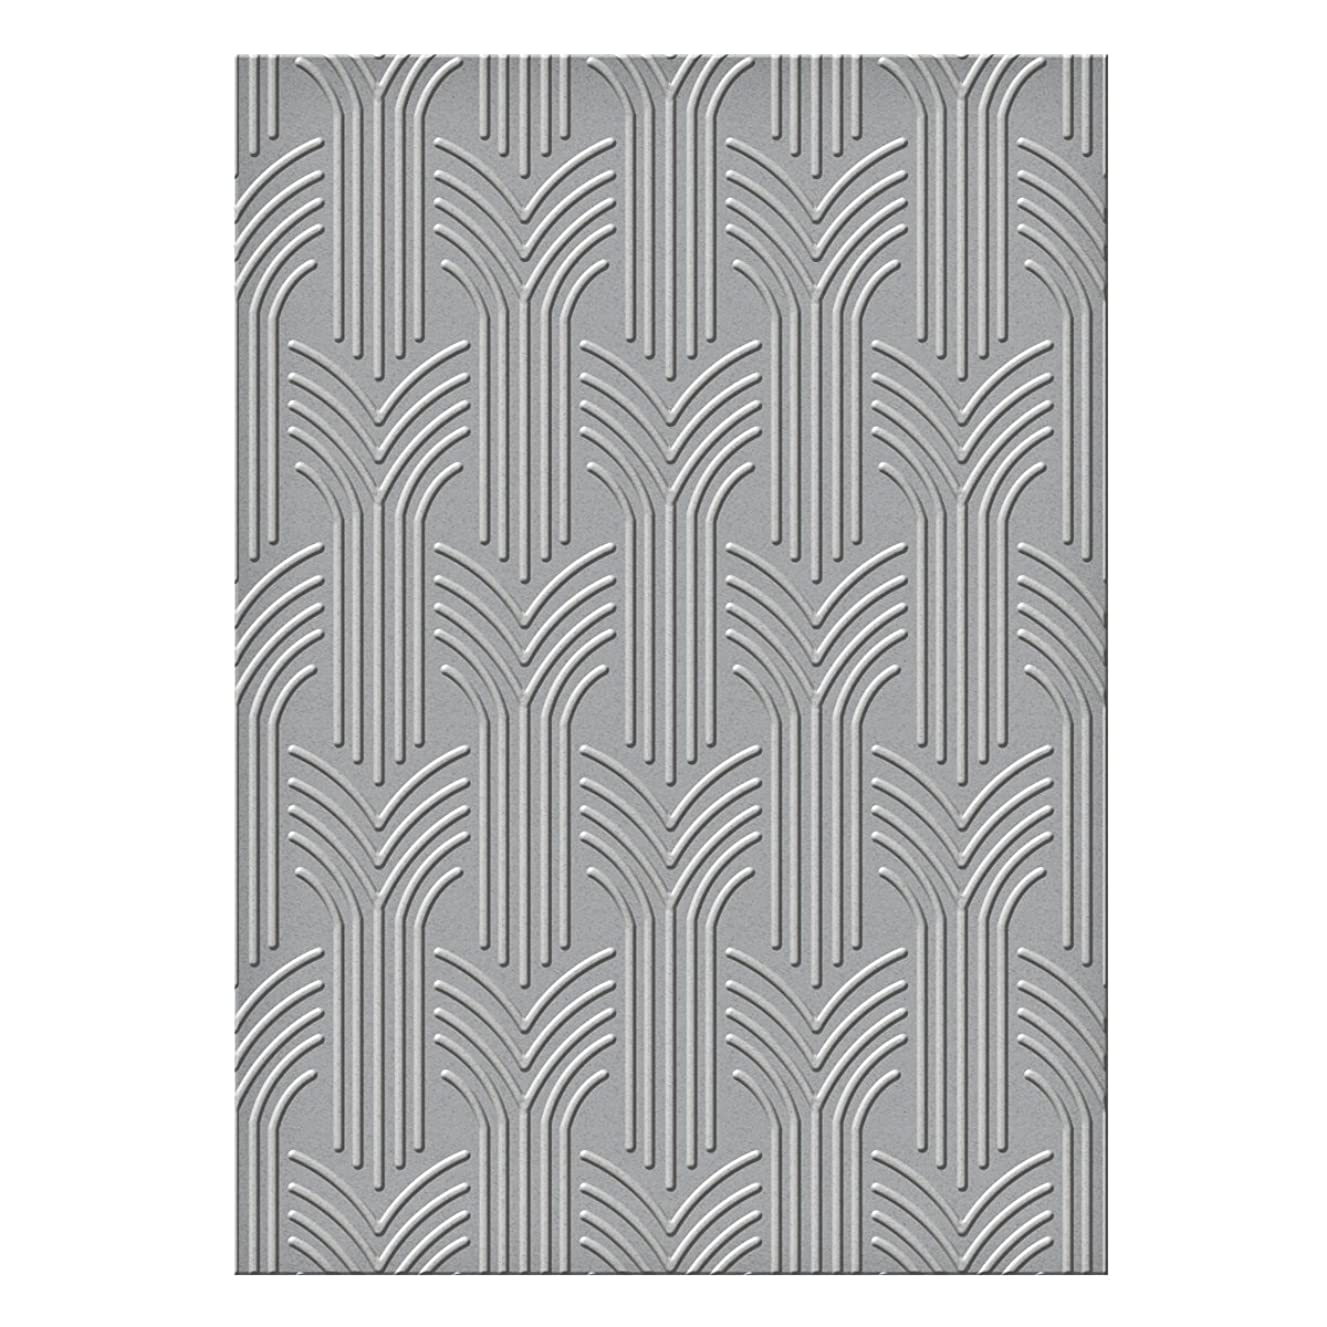 Spellbinders S6-069 Arched Arrows Texture Plate